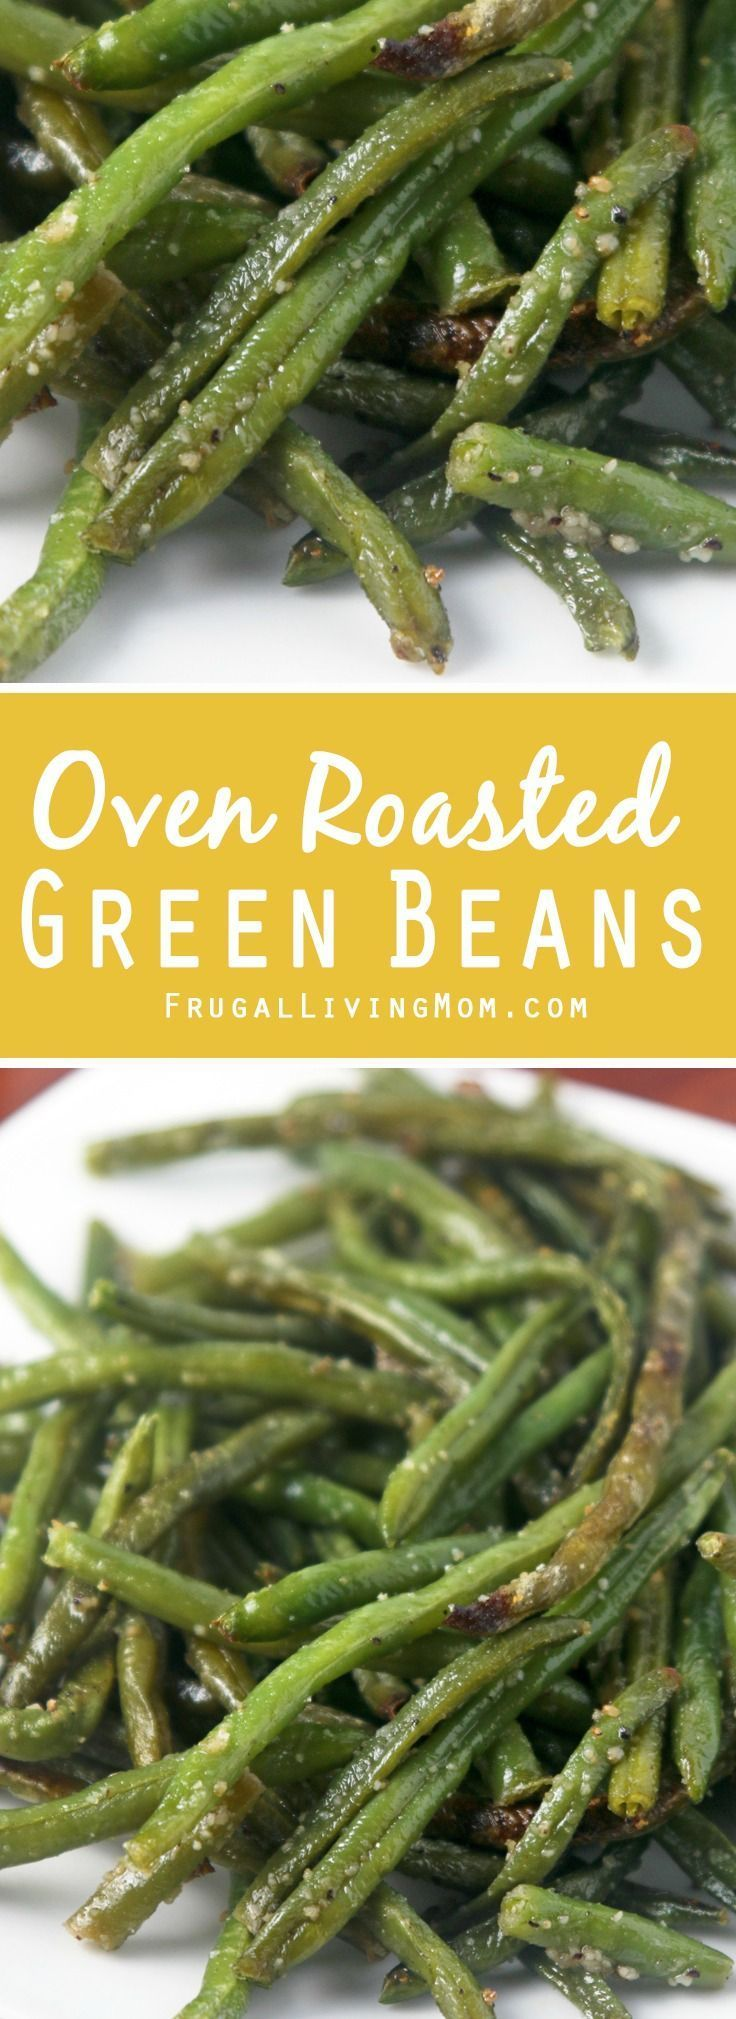 Oven Roasted Green Beans Recipe - Frugal Living Mom